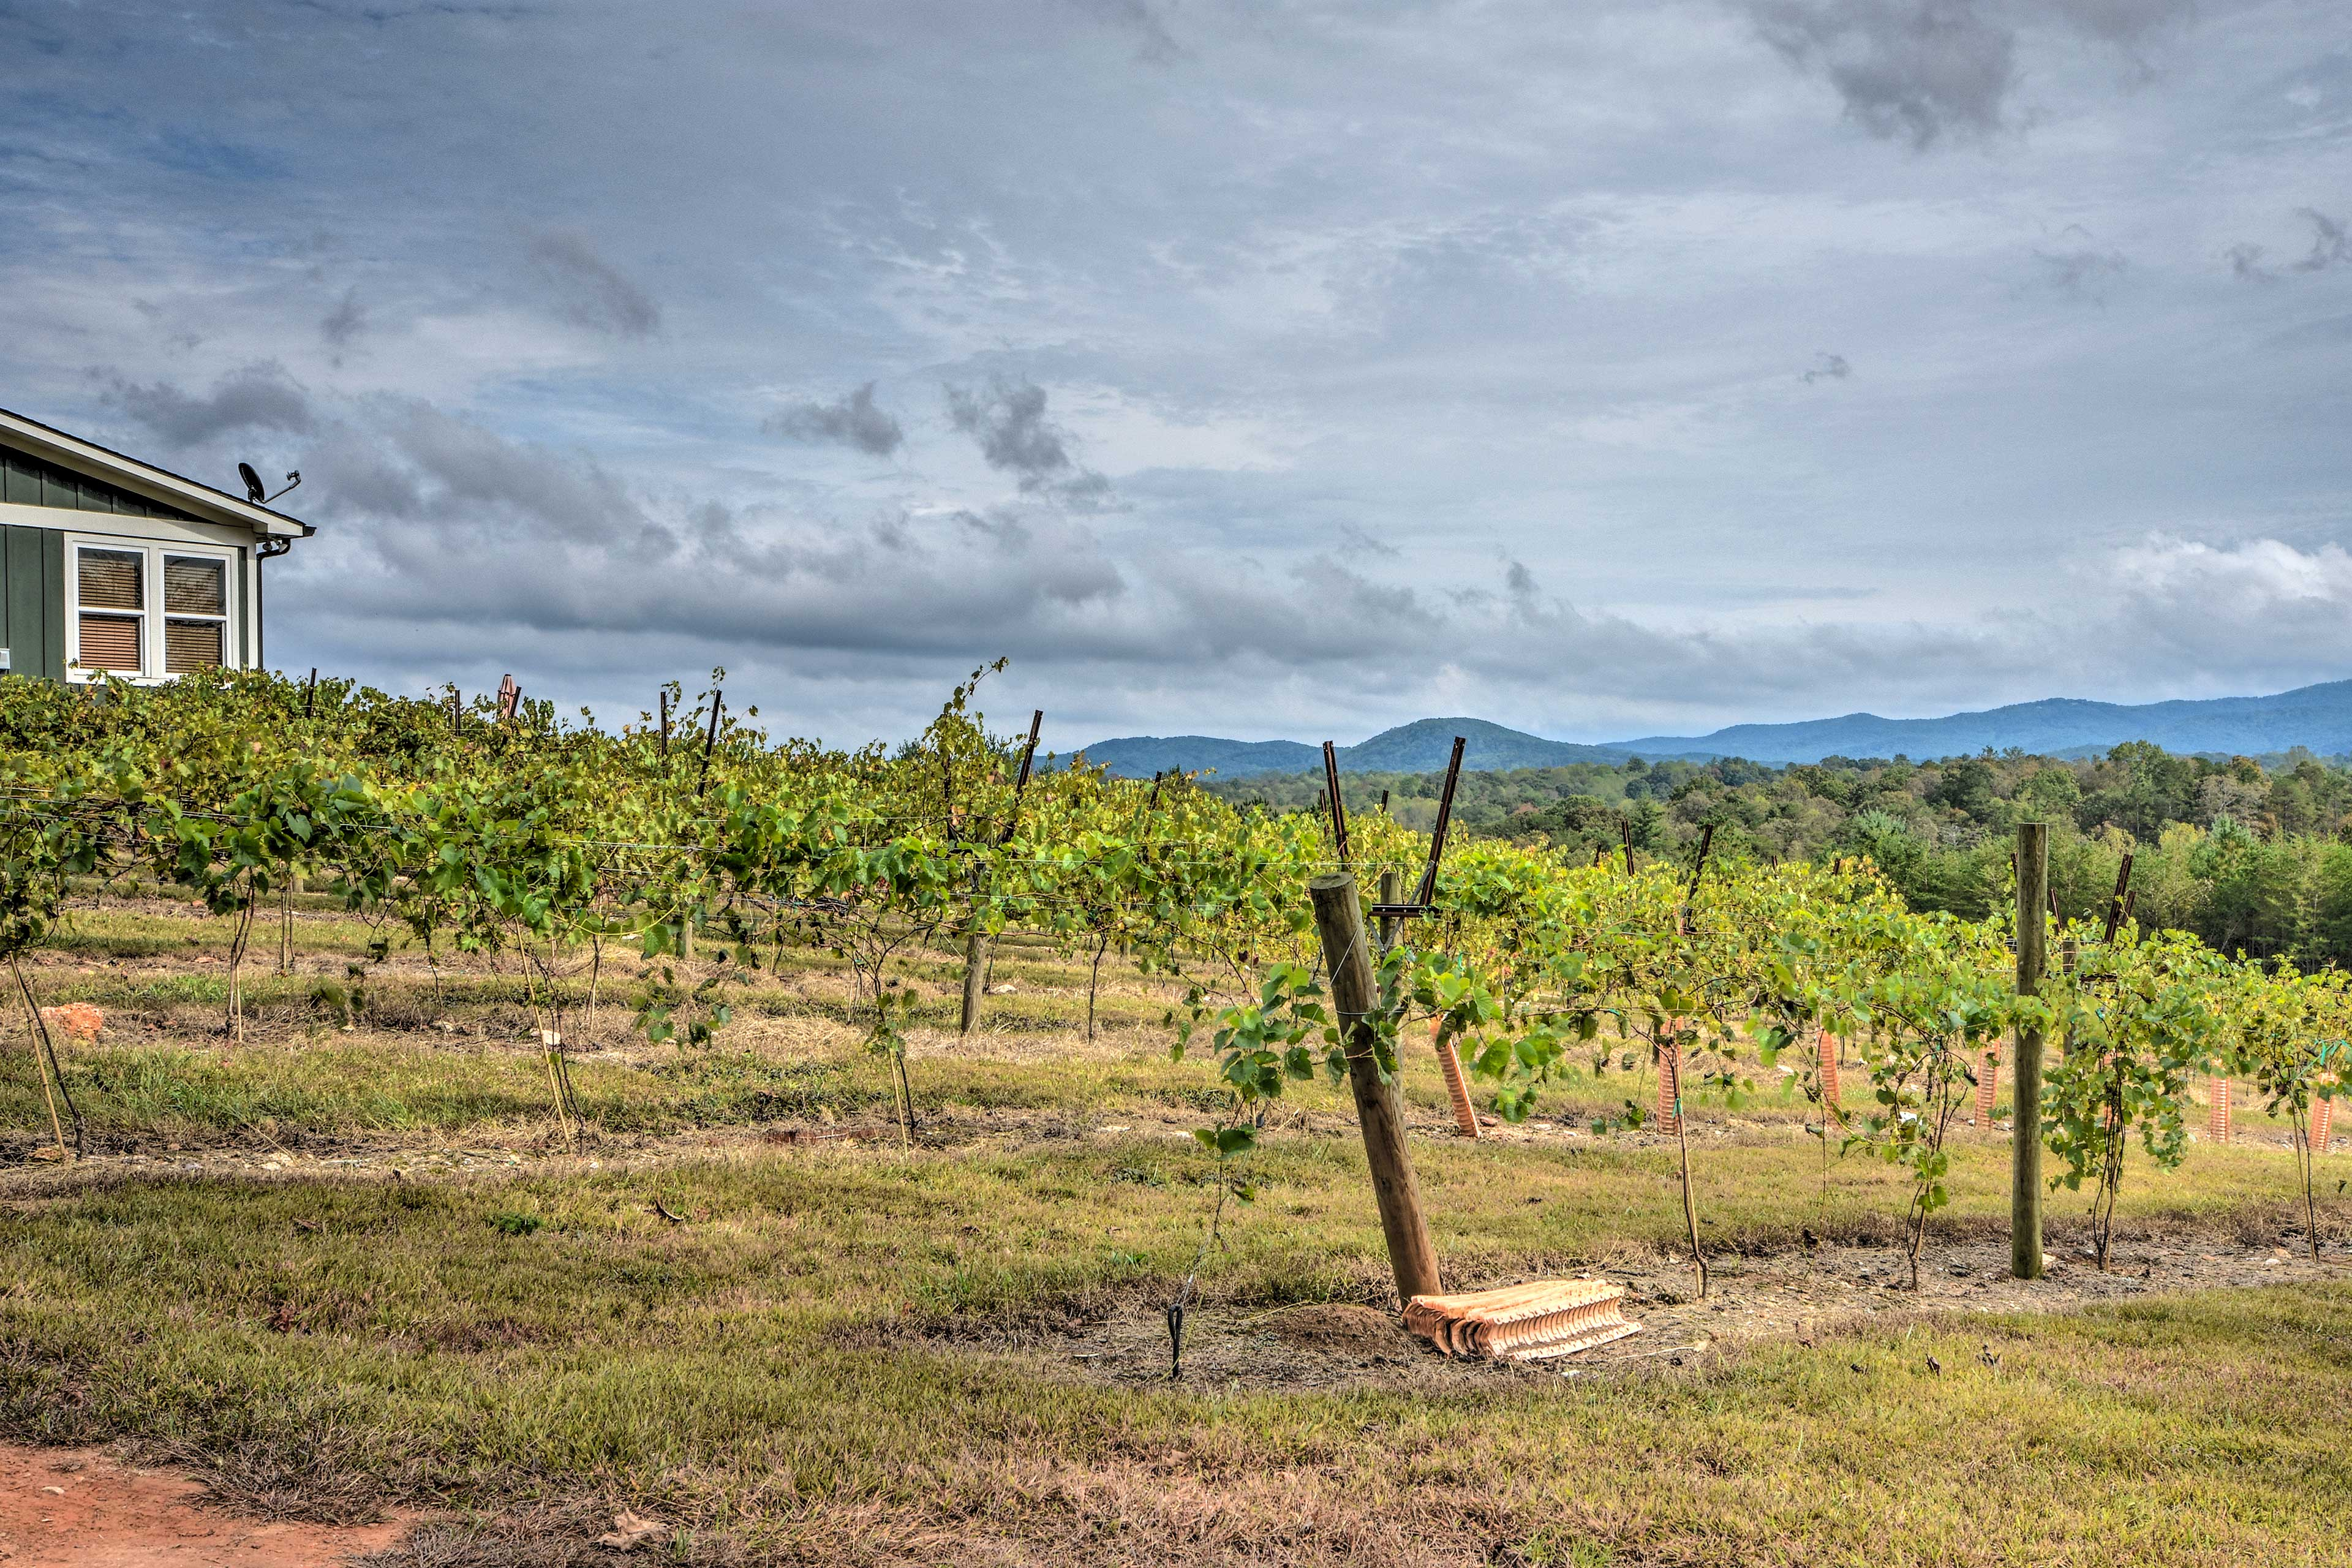 See what kind of grapes are growing at the vineyard.